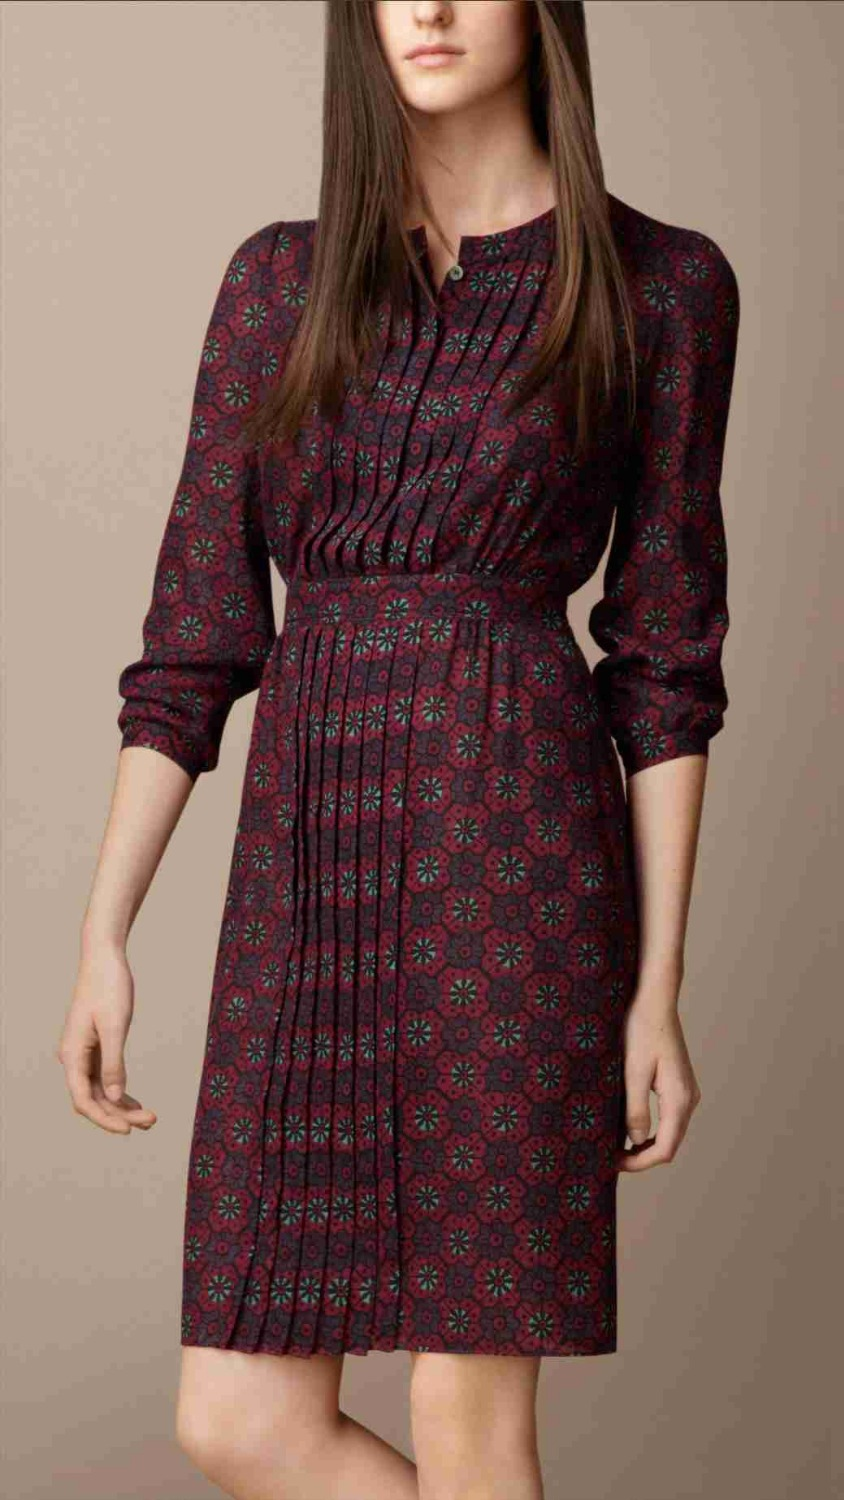 2015 fashion new designer dresses women high quality for High couture clothing